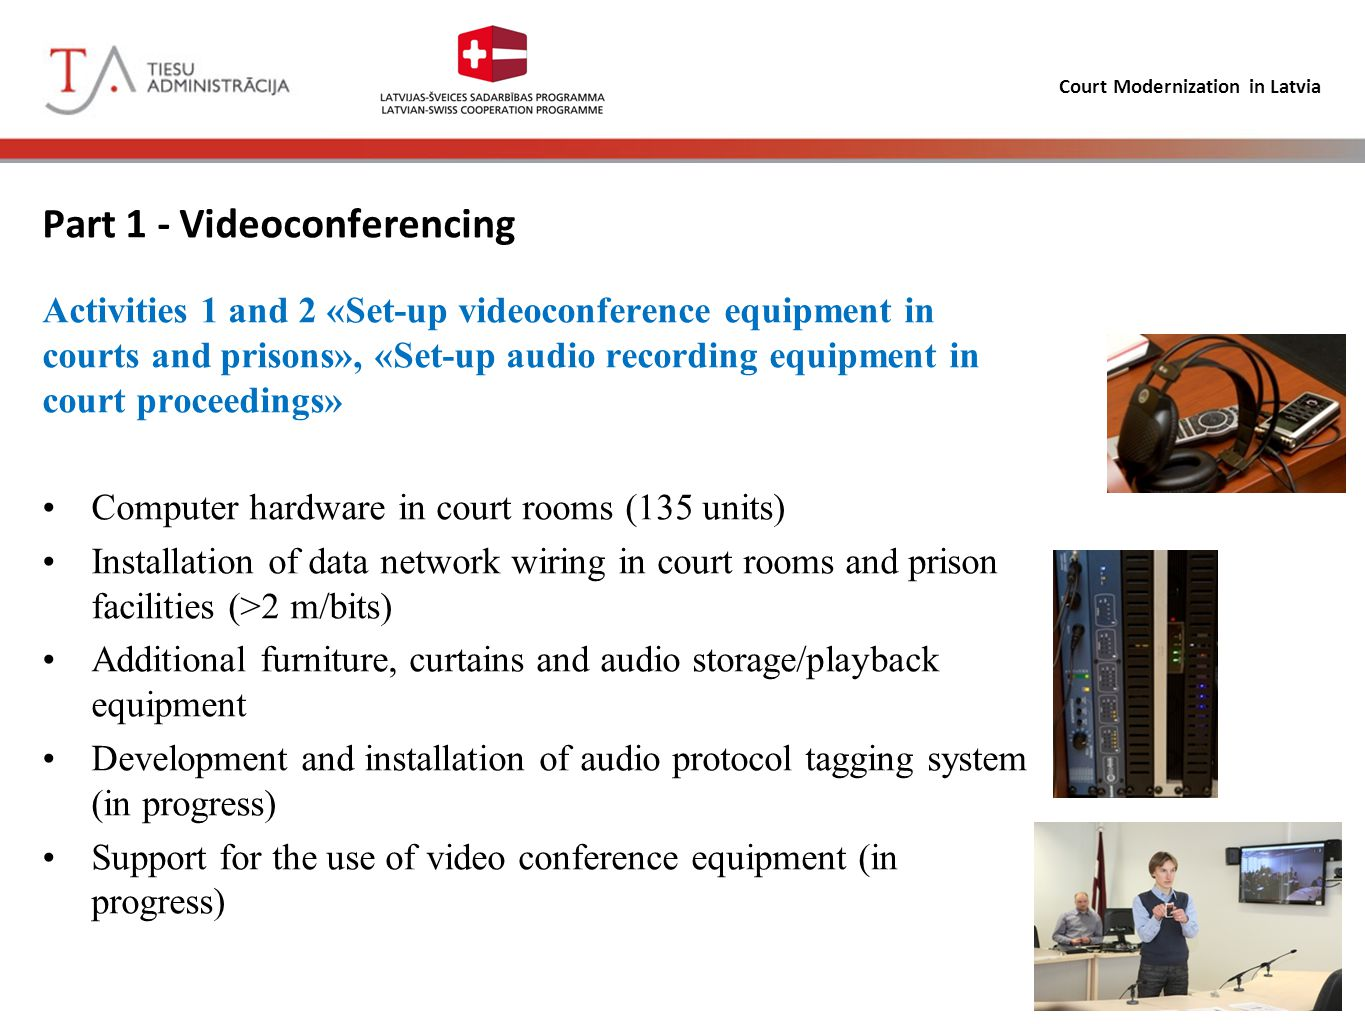 Court Modernization in Latvia Part 1 - Videoconferencing Current project activities (agreed as of 28.06.2012): 13 more rooms will be equiped 8 court rooms with audio recording equipment 25 additional displays 45 additional microphones Current status – tendering procedure in progress (2 applicants) Implementation within existing budget framework Implementation deadline June 30, 2013